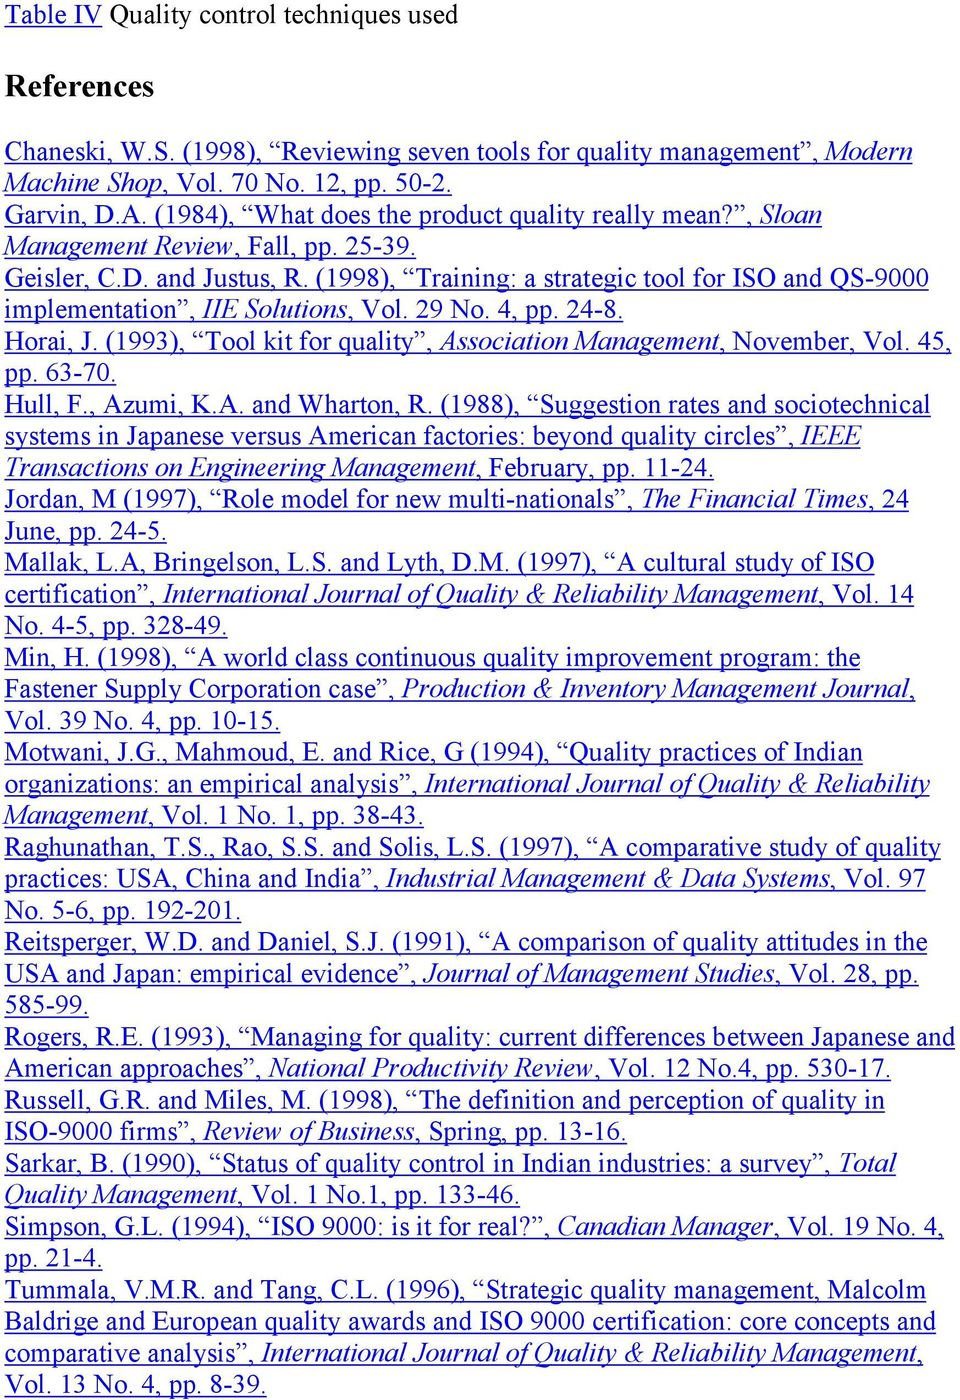 (1998), Training: a strategic tool for ISO and QS-9000 implementation, IIE Solutions, Vol. 29 No. 4, pp. 24-8. Horai, J. (1993), Tool kit for quality, Association Management, November, Vol. 45, pp.